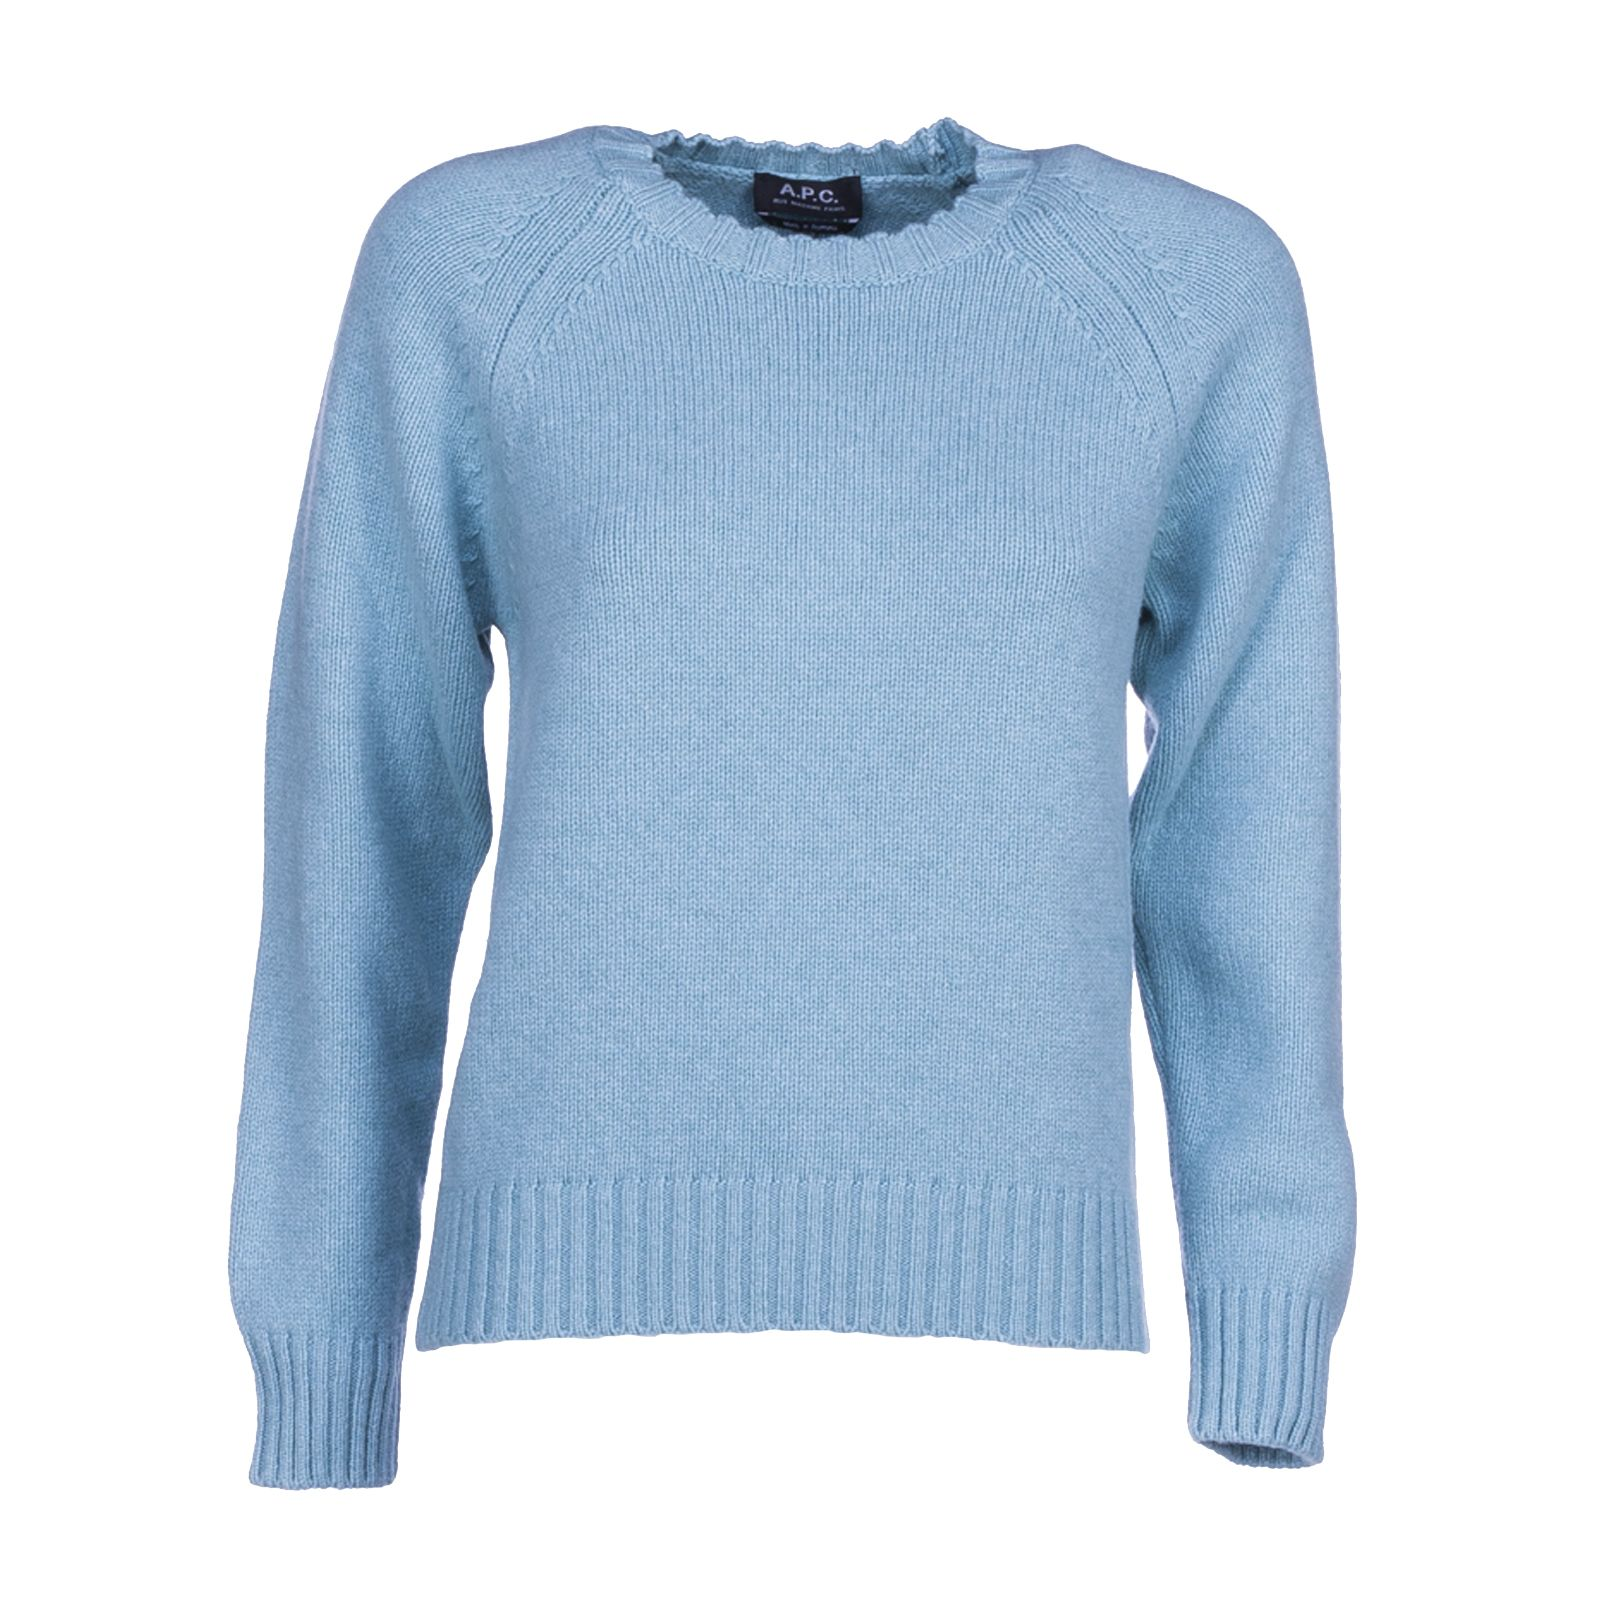 A.p.c. Stirling Pullover